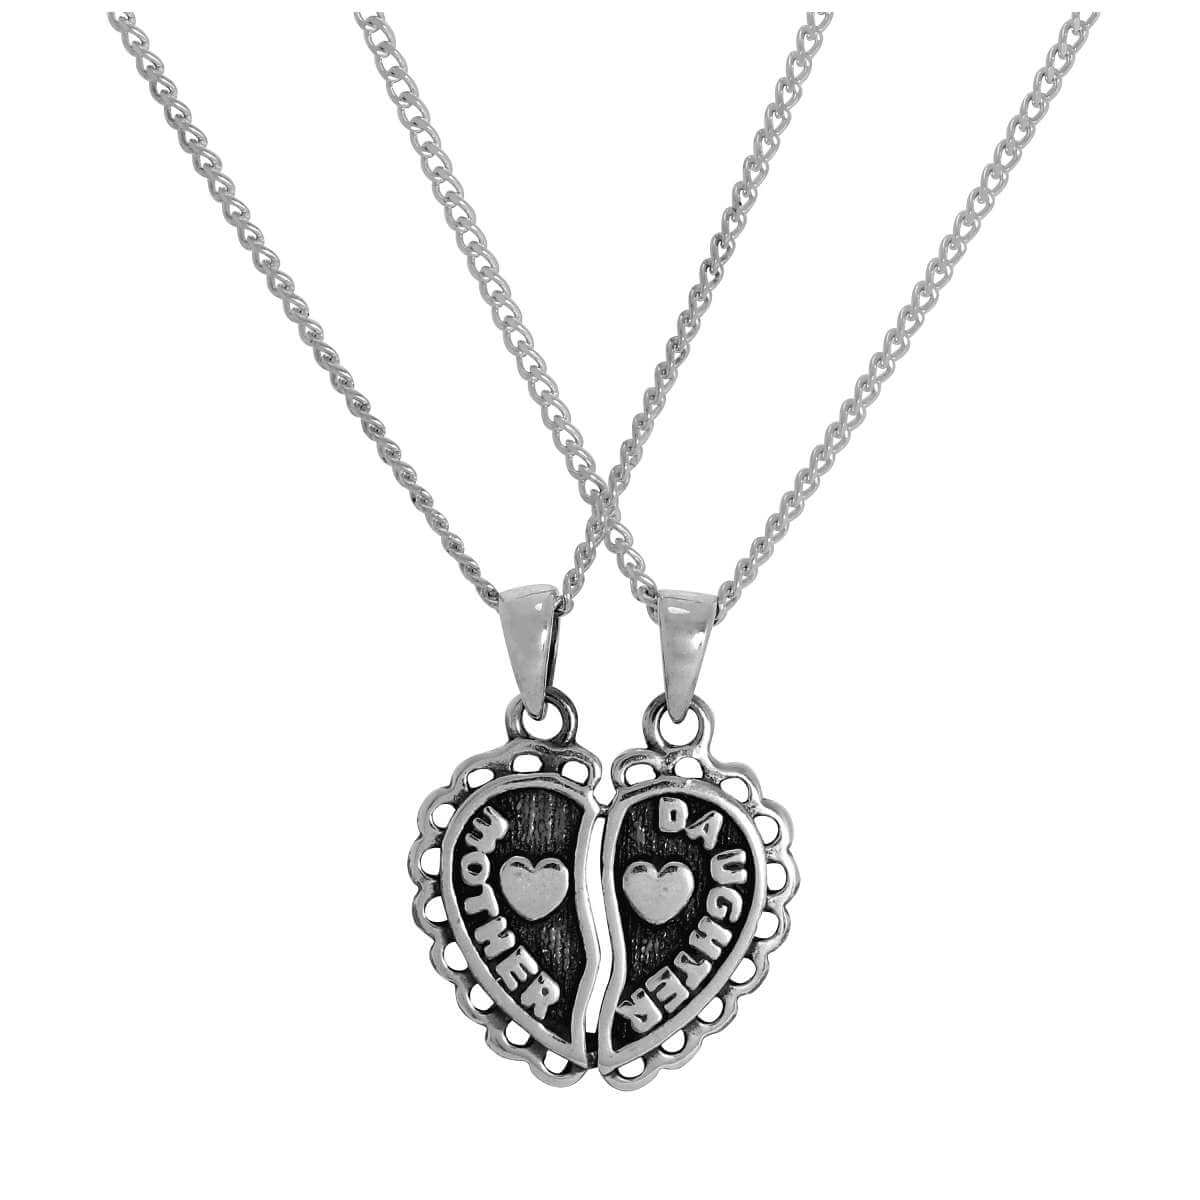 Sterling Silver Mother & Daughter Heart Double Pendant Necklace 16 - 24 Inches